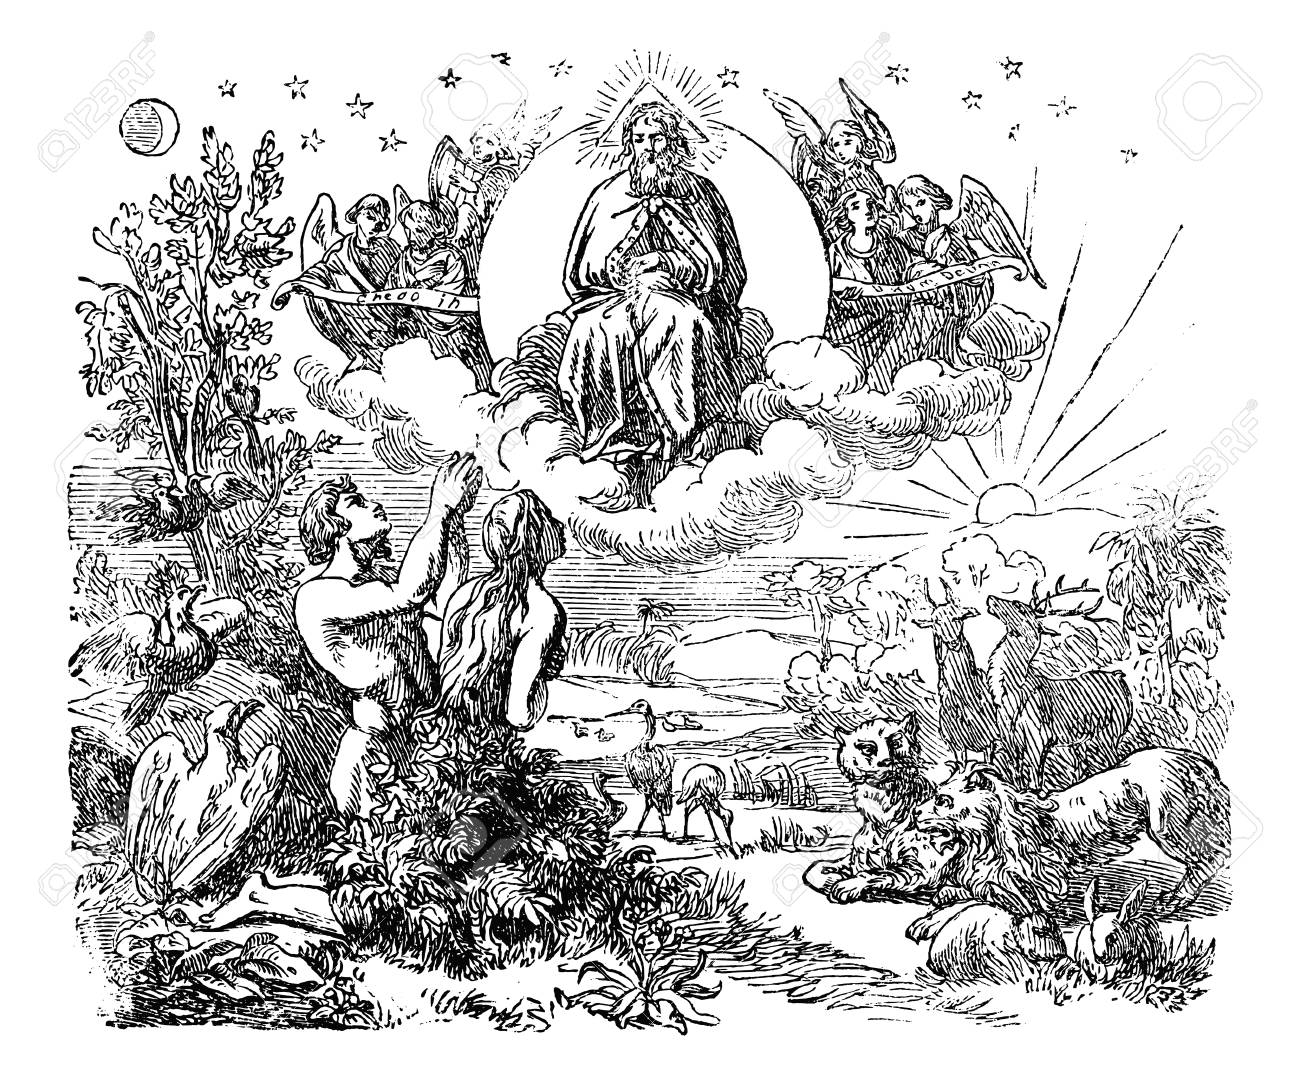 Vintage antique illustration and line drawing or engraving of biblical God and angels flying above the animals and Adam and Eve in Garden of Eden after the creation of the world.Genesis 1-2. - 119729722